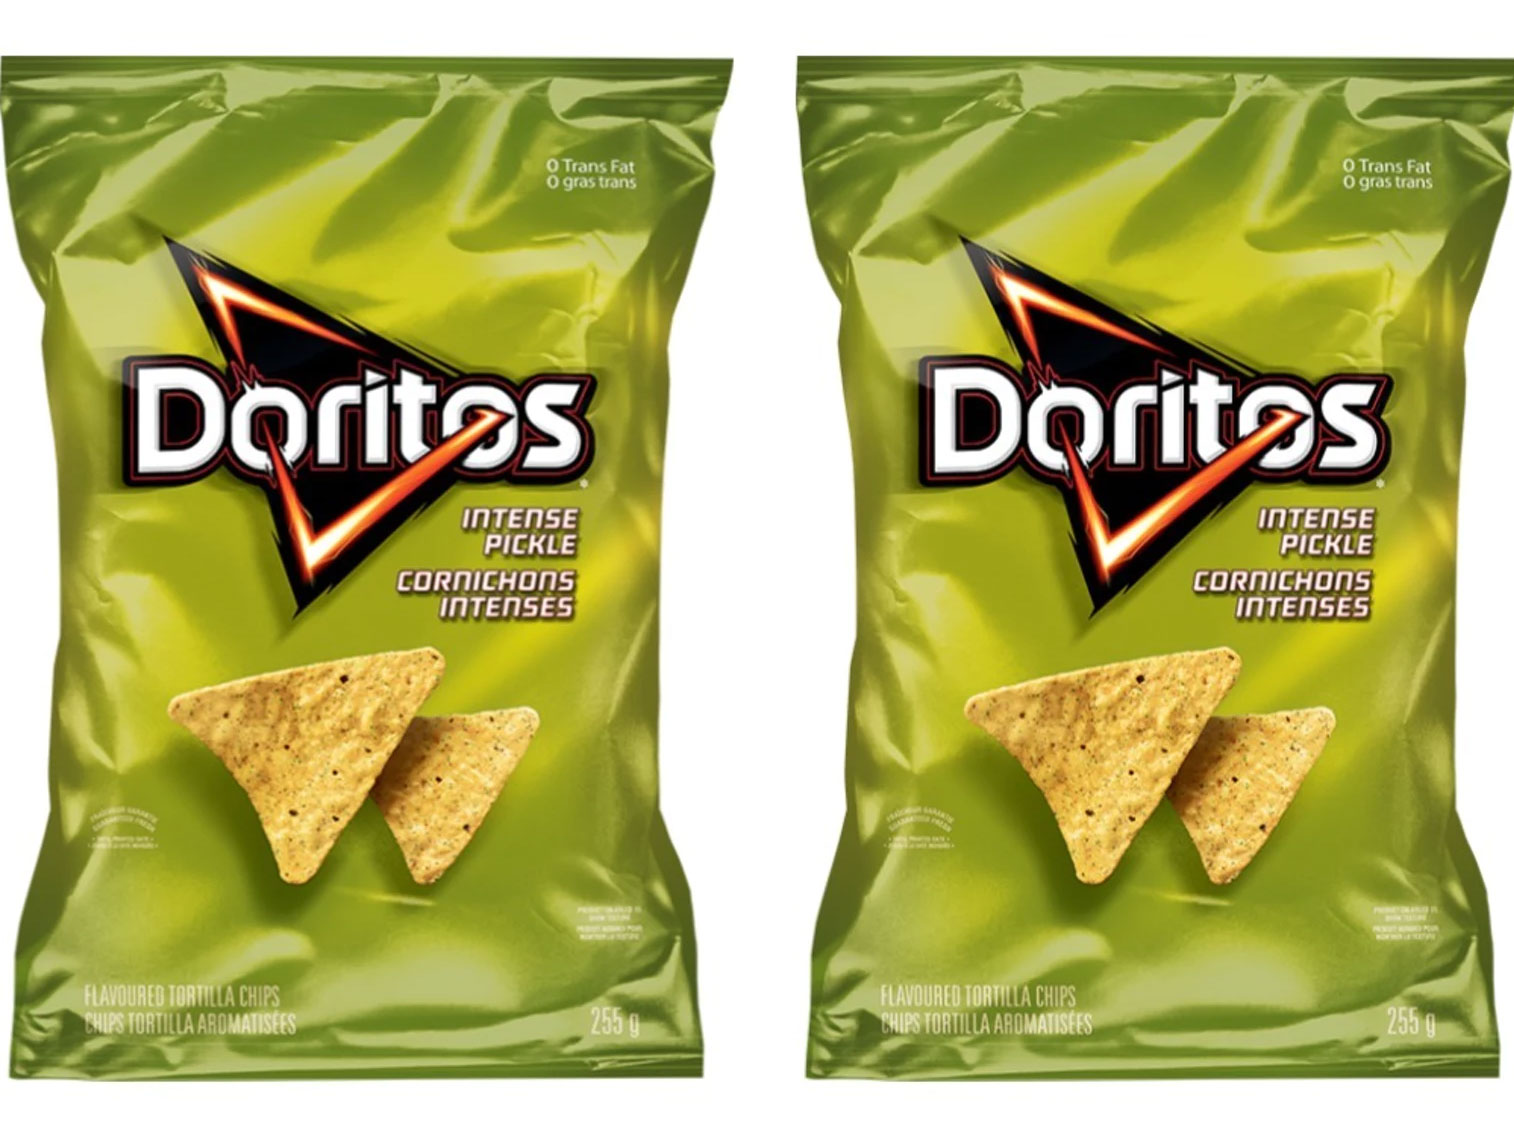 pickle-doritos.jpg